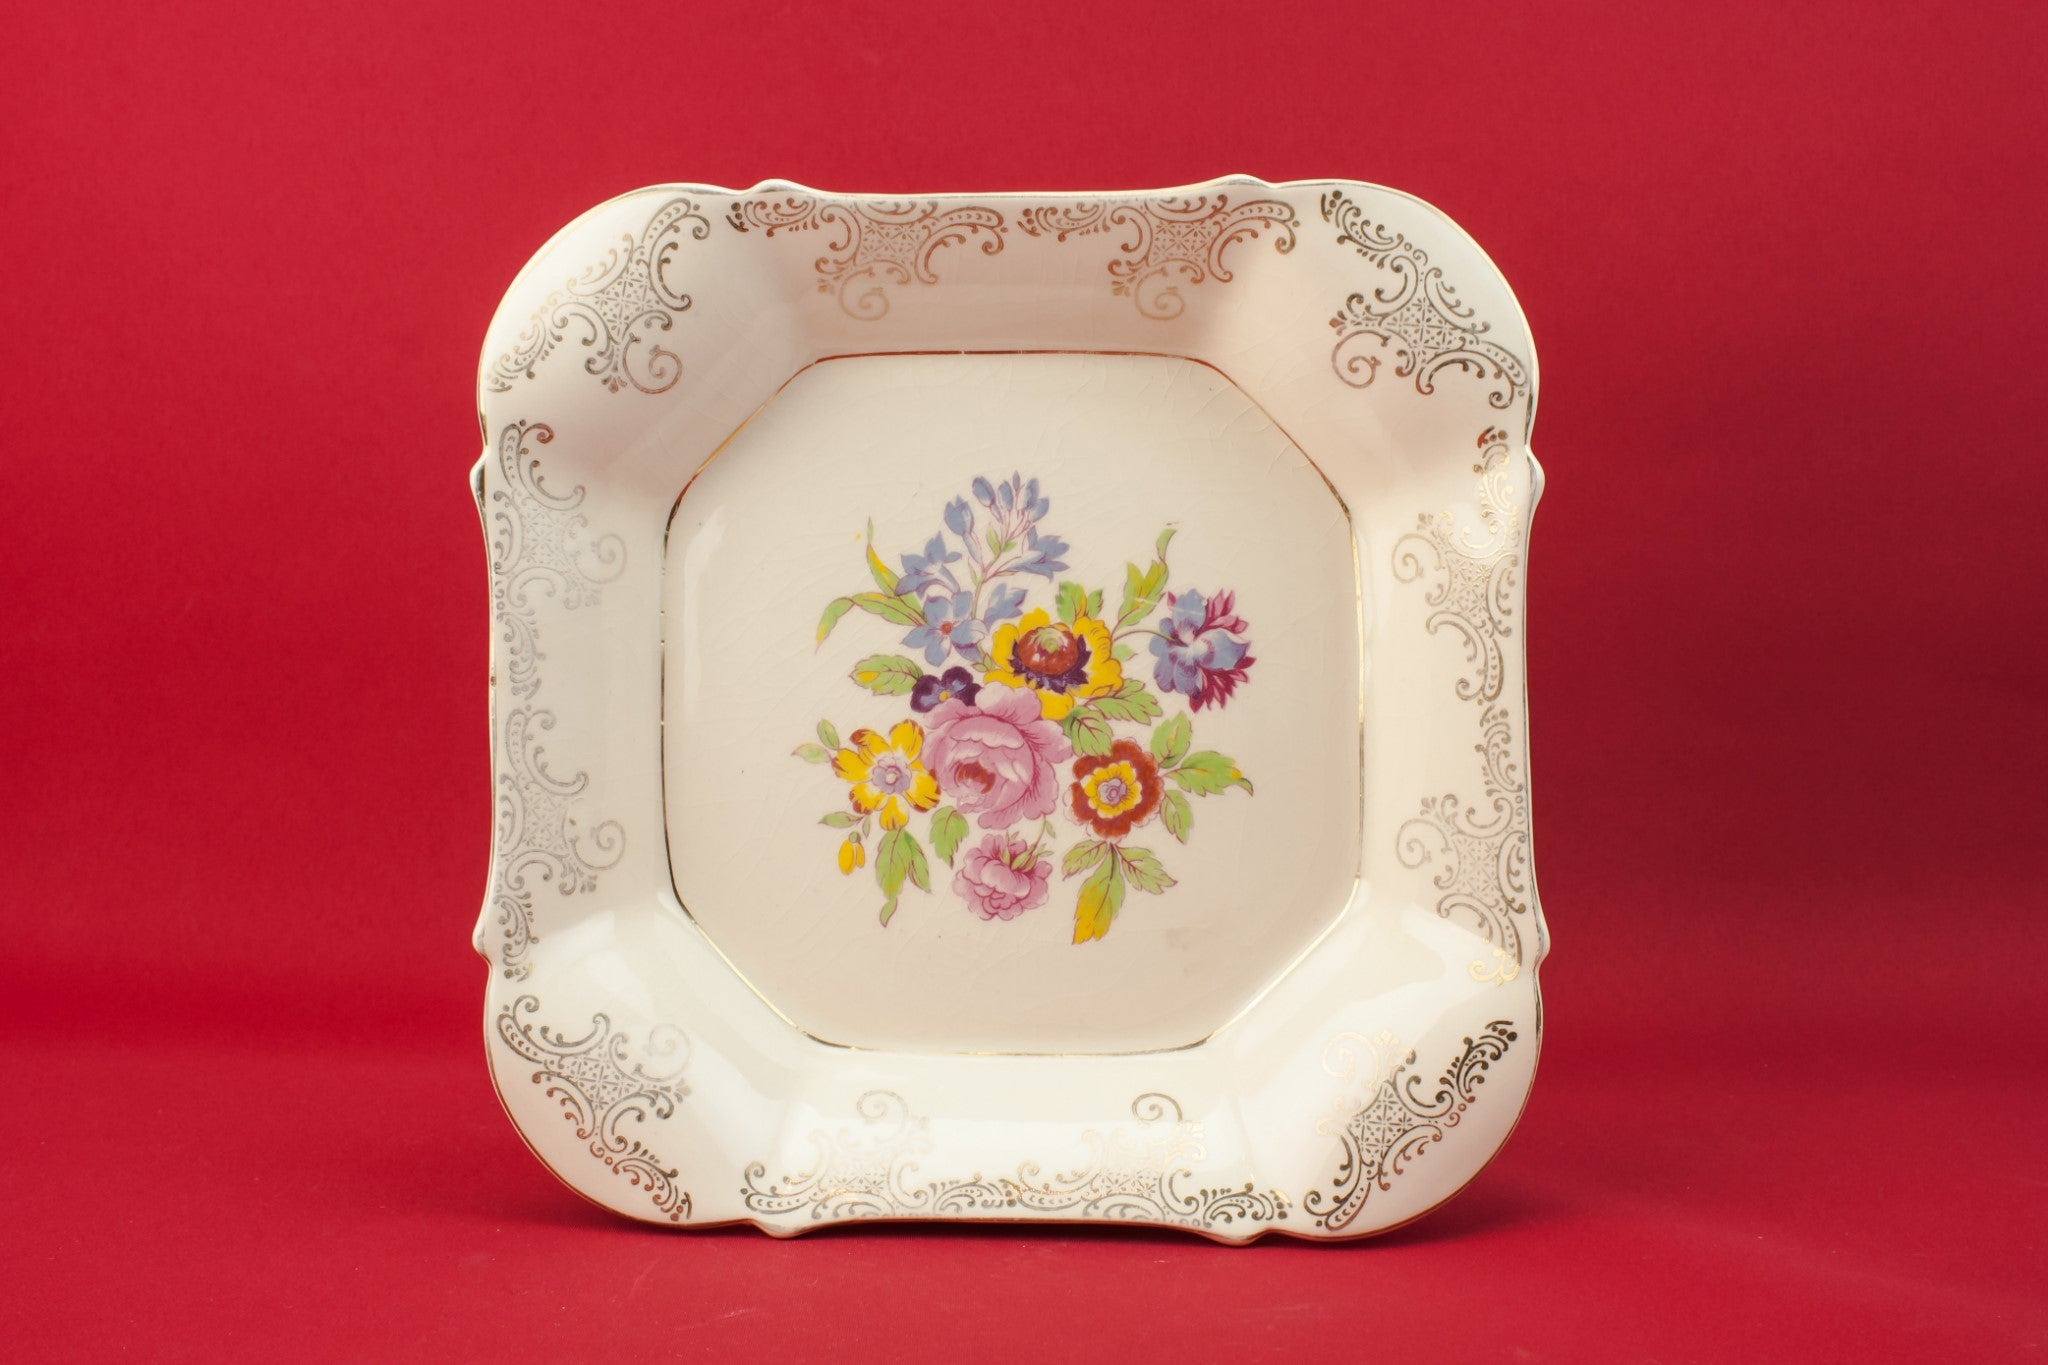 Floral pottery serving dish